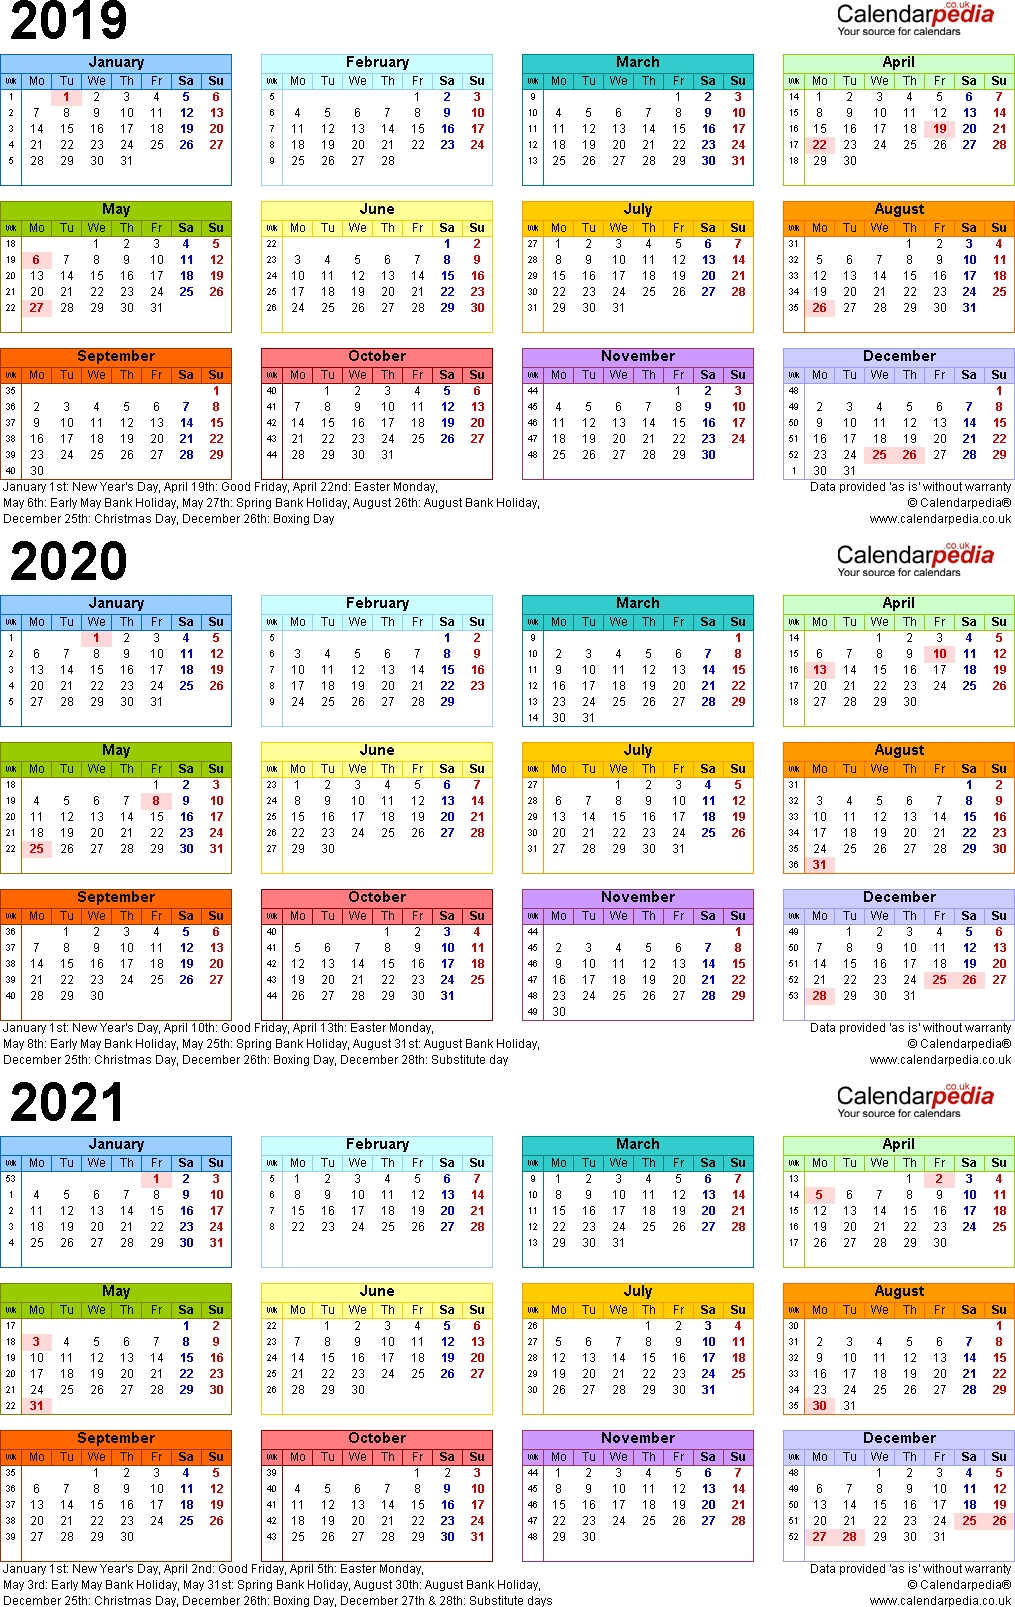 Three Year Calendars For 2019, 2020 & 2021 (Uk) For Word with regard to 3 Year Calendar 2019 2020 2021